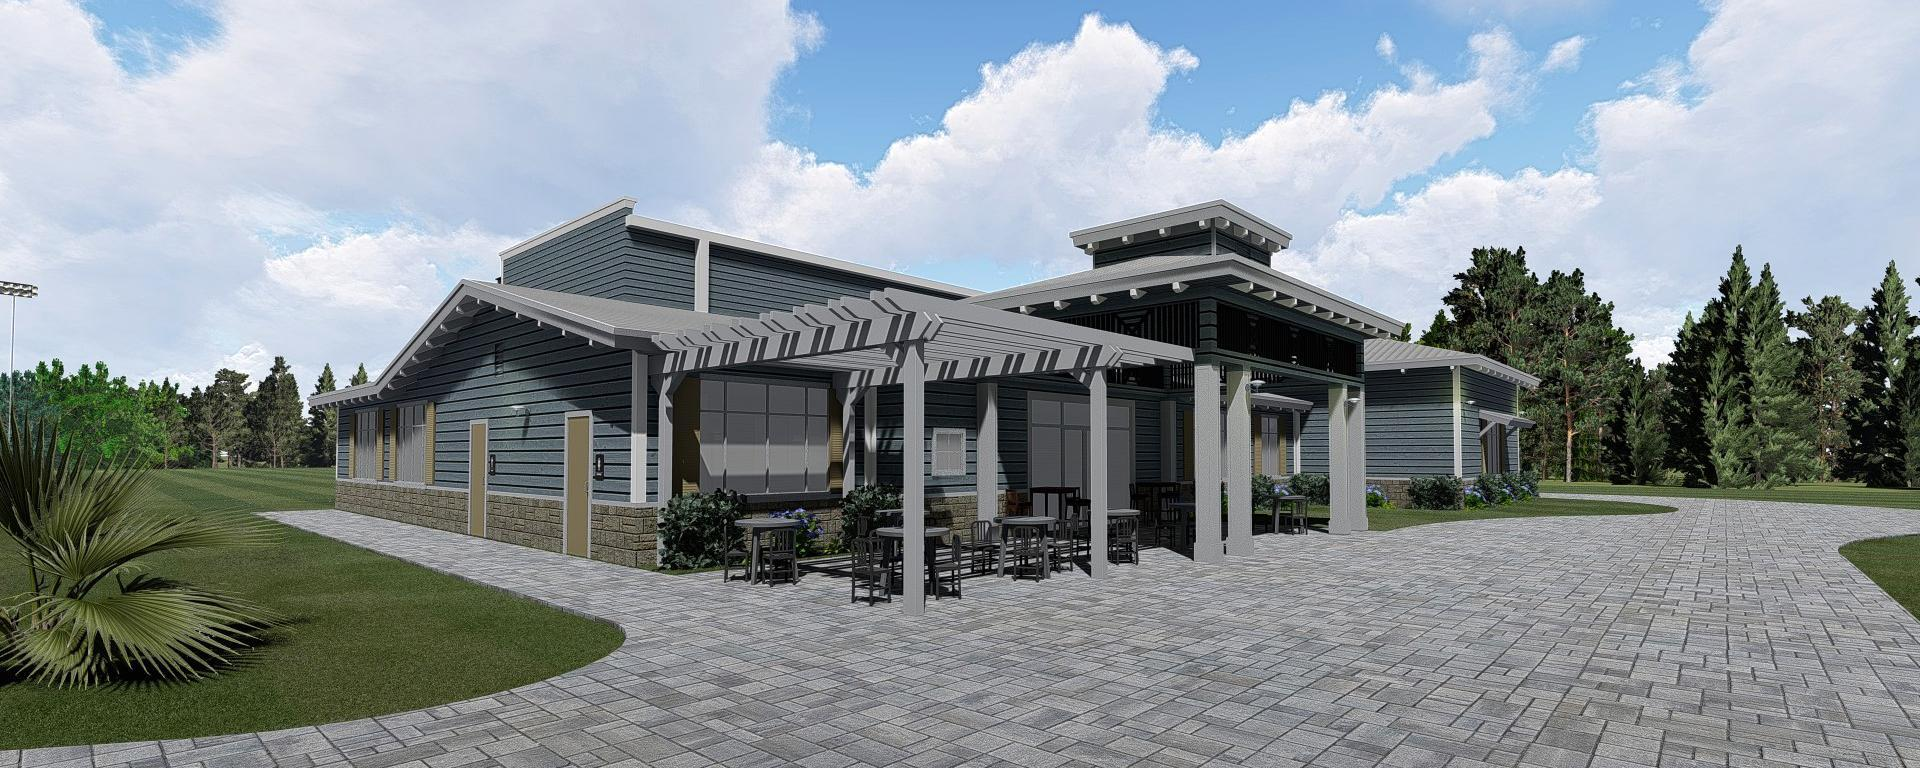 Rendering of the side view of the clubhouse